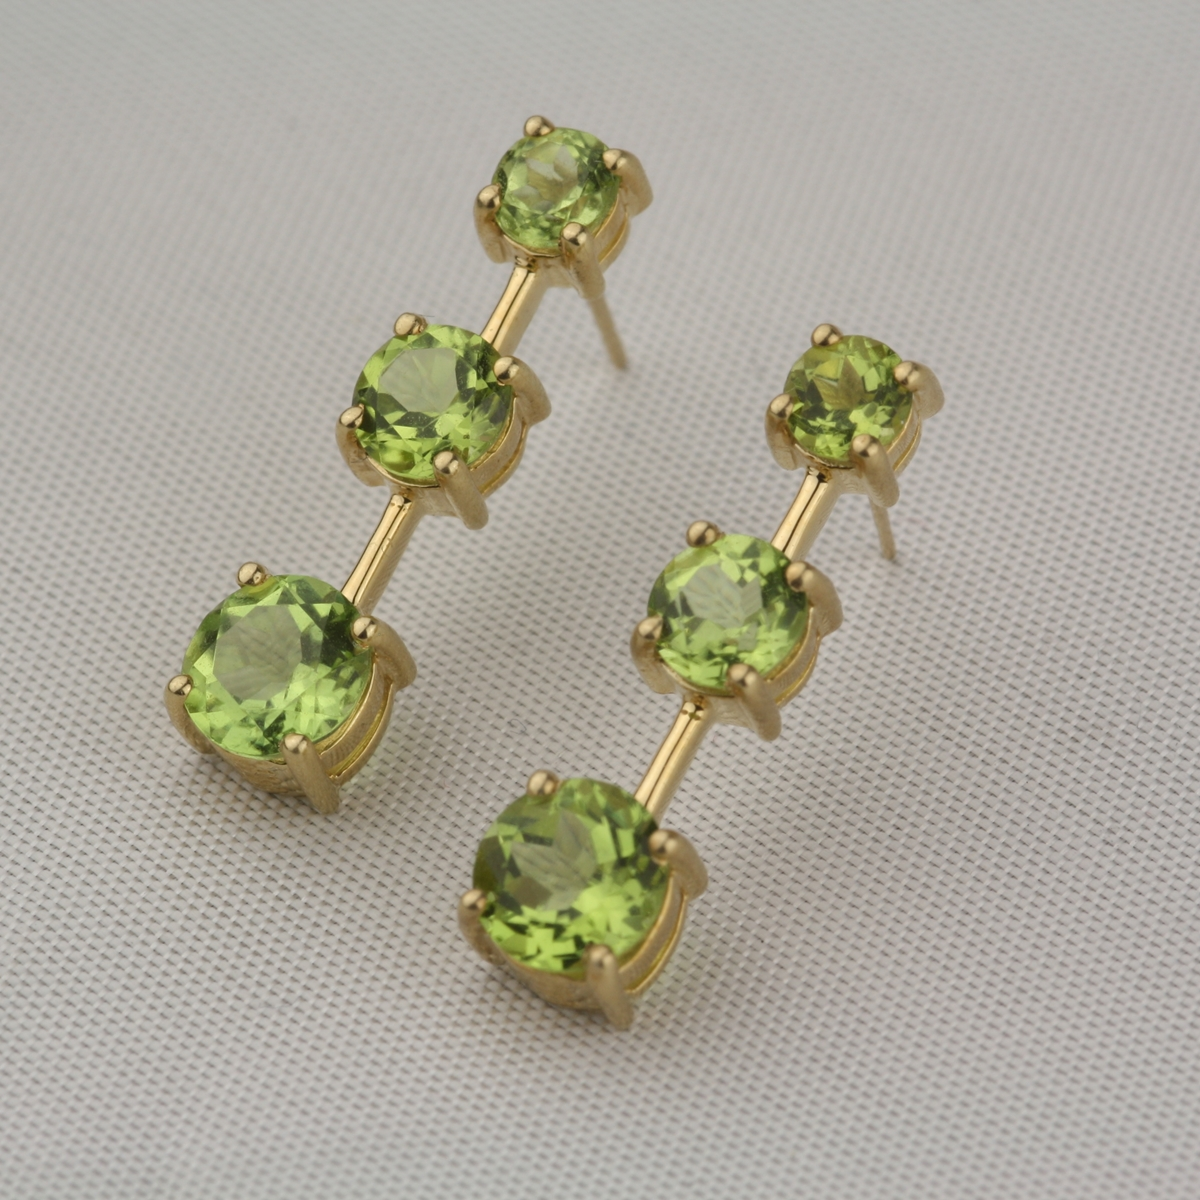 marquise asymmetrical product dona asy with sterling jewelry miller nasca peridot artisan earrings